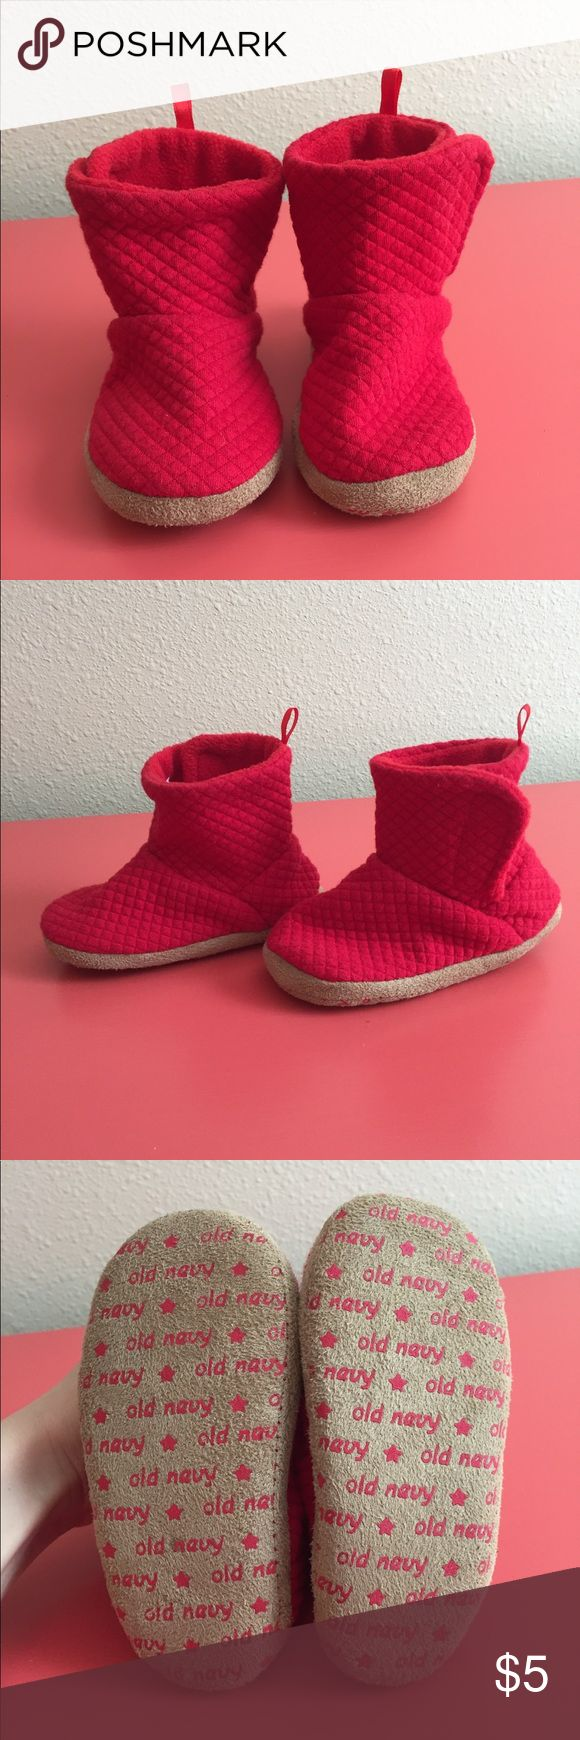 Old Navy Toddler Slipper Booties Old Navy Toddler slipper booties. In perfect condition. I got these for my daughter for Christmas and she wanted nothing to do with them. Worn for like 10mins in our living room. Fit small, more like a 6. Smoke and pet free home! Old Navy Shoes Slippers